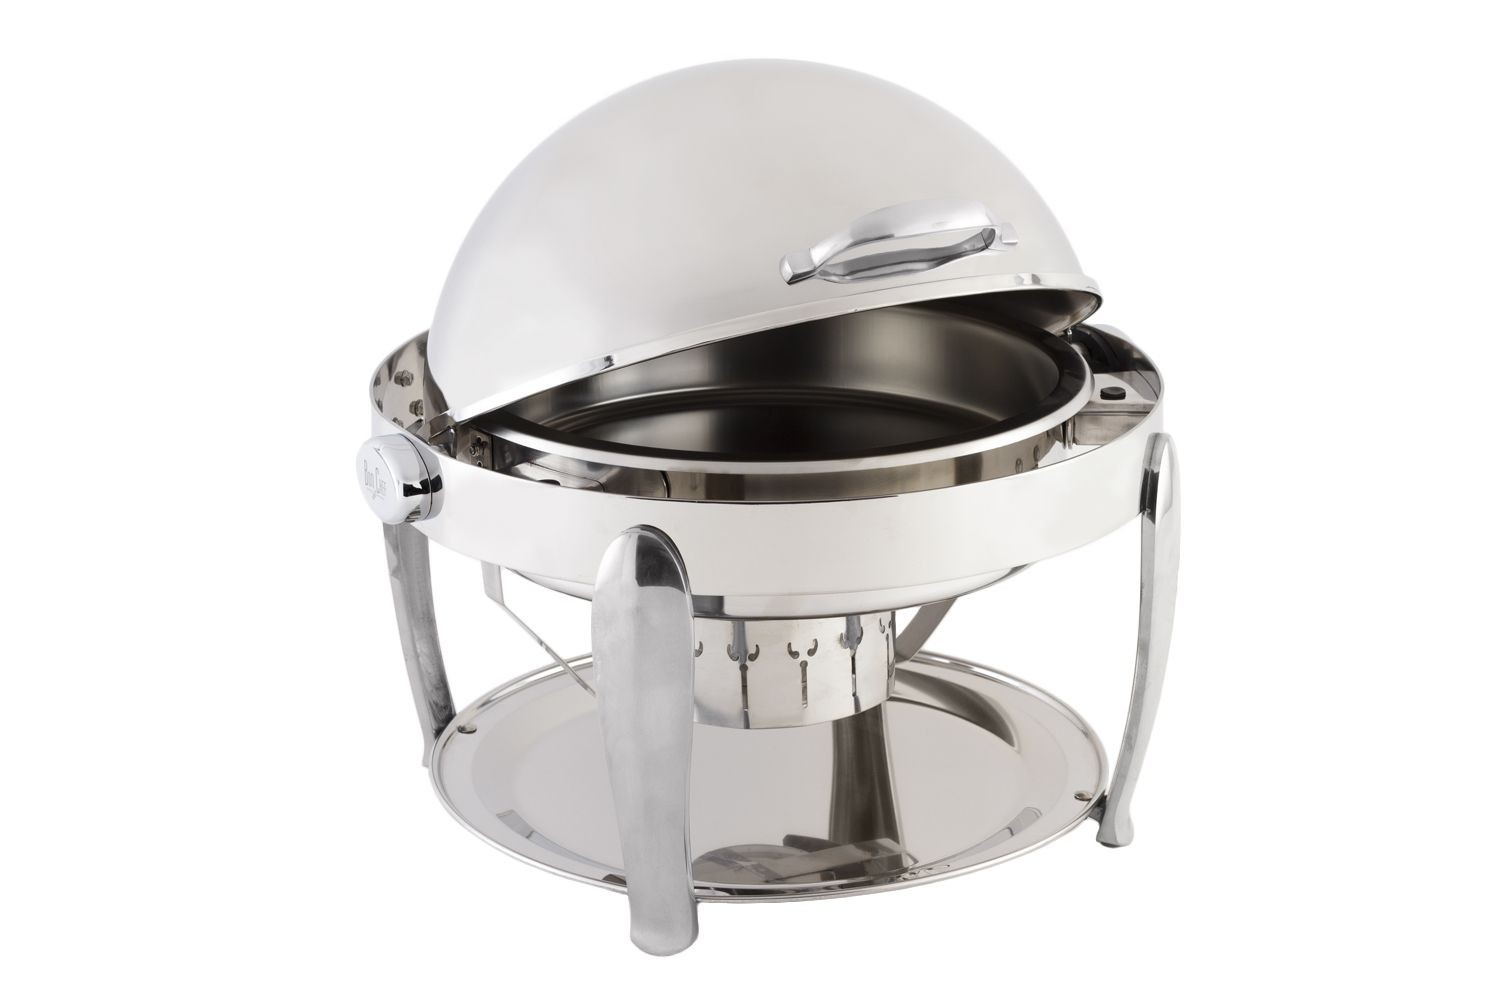 Bon Chef 10001CH Manhattan Round Roll Top Chafer with Vented Lid and Chrome Accents 8 Qt..